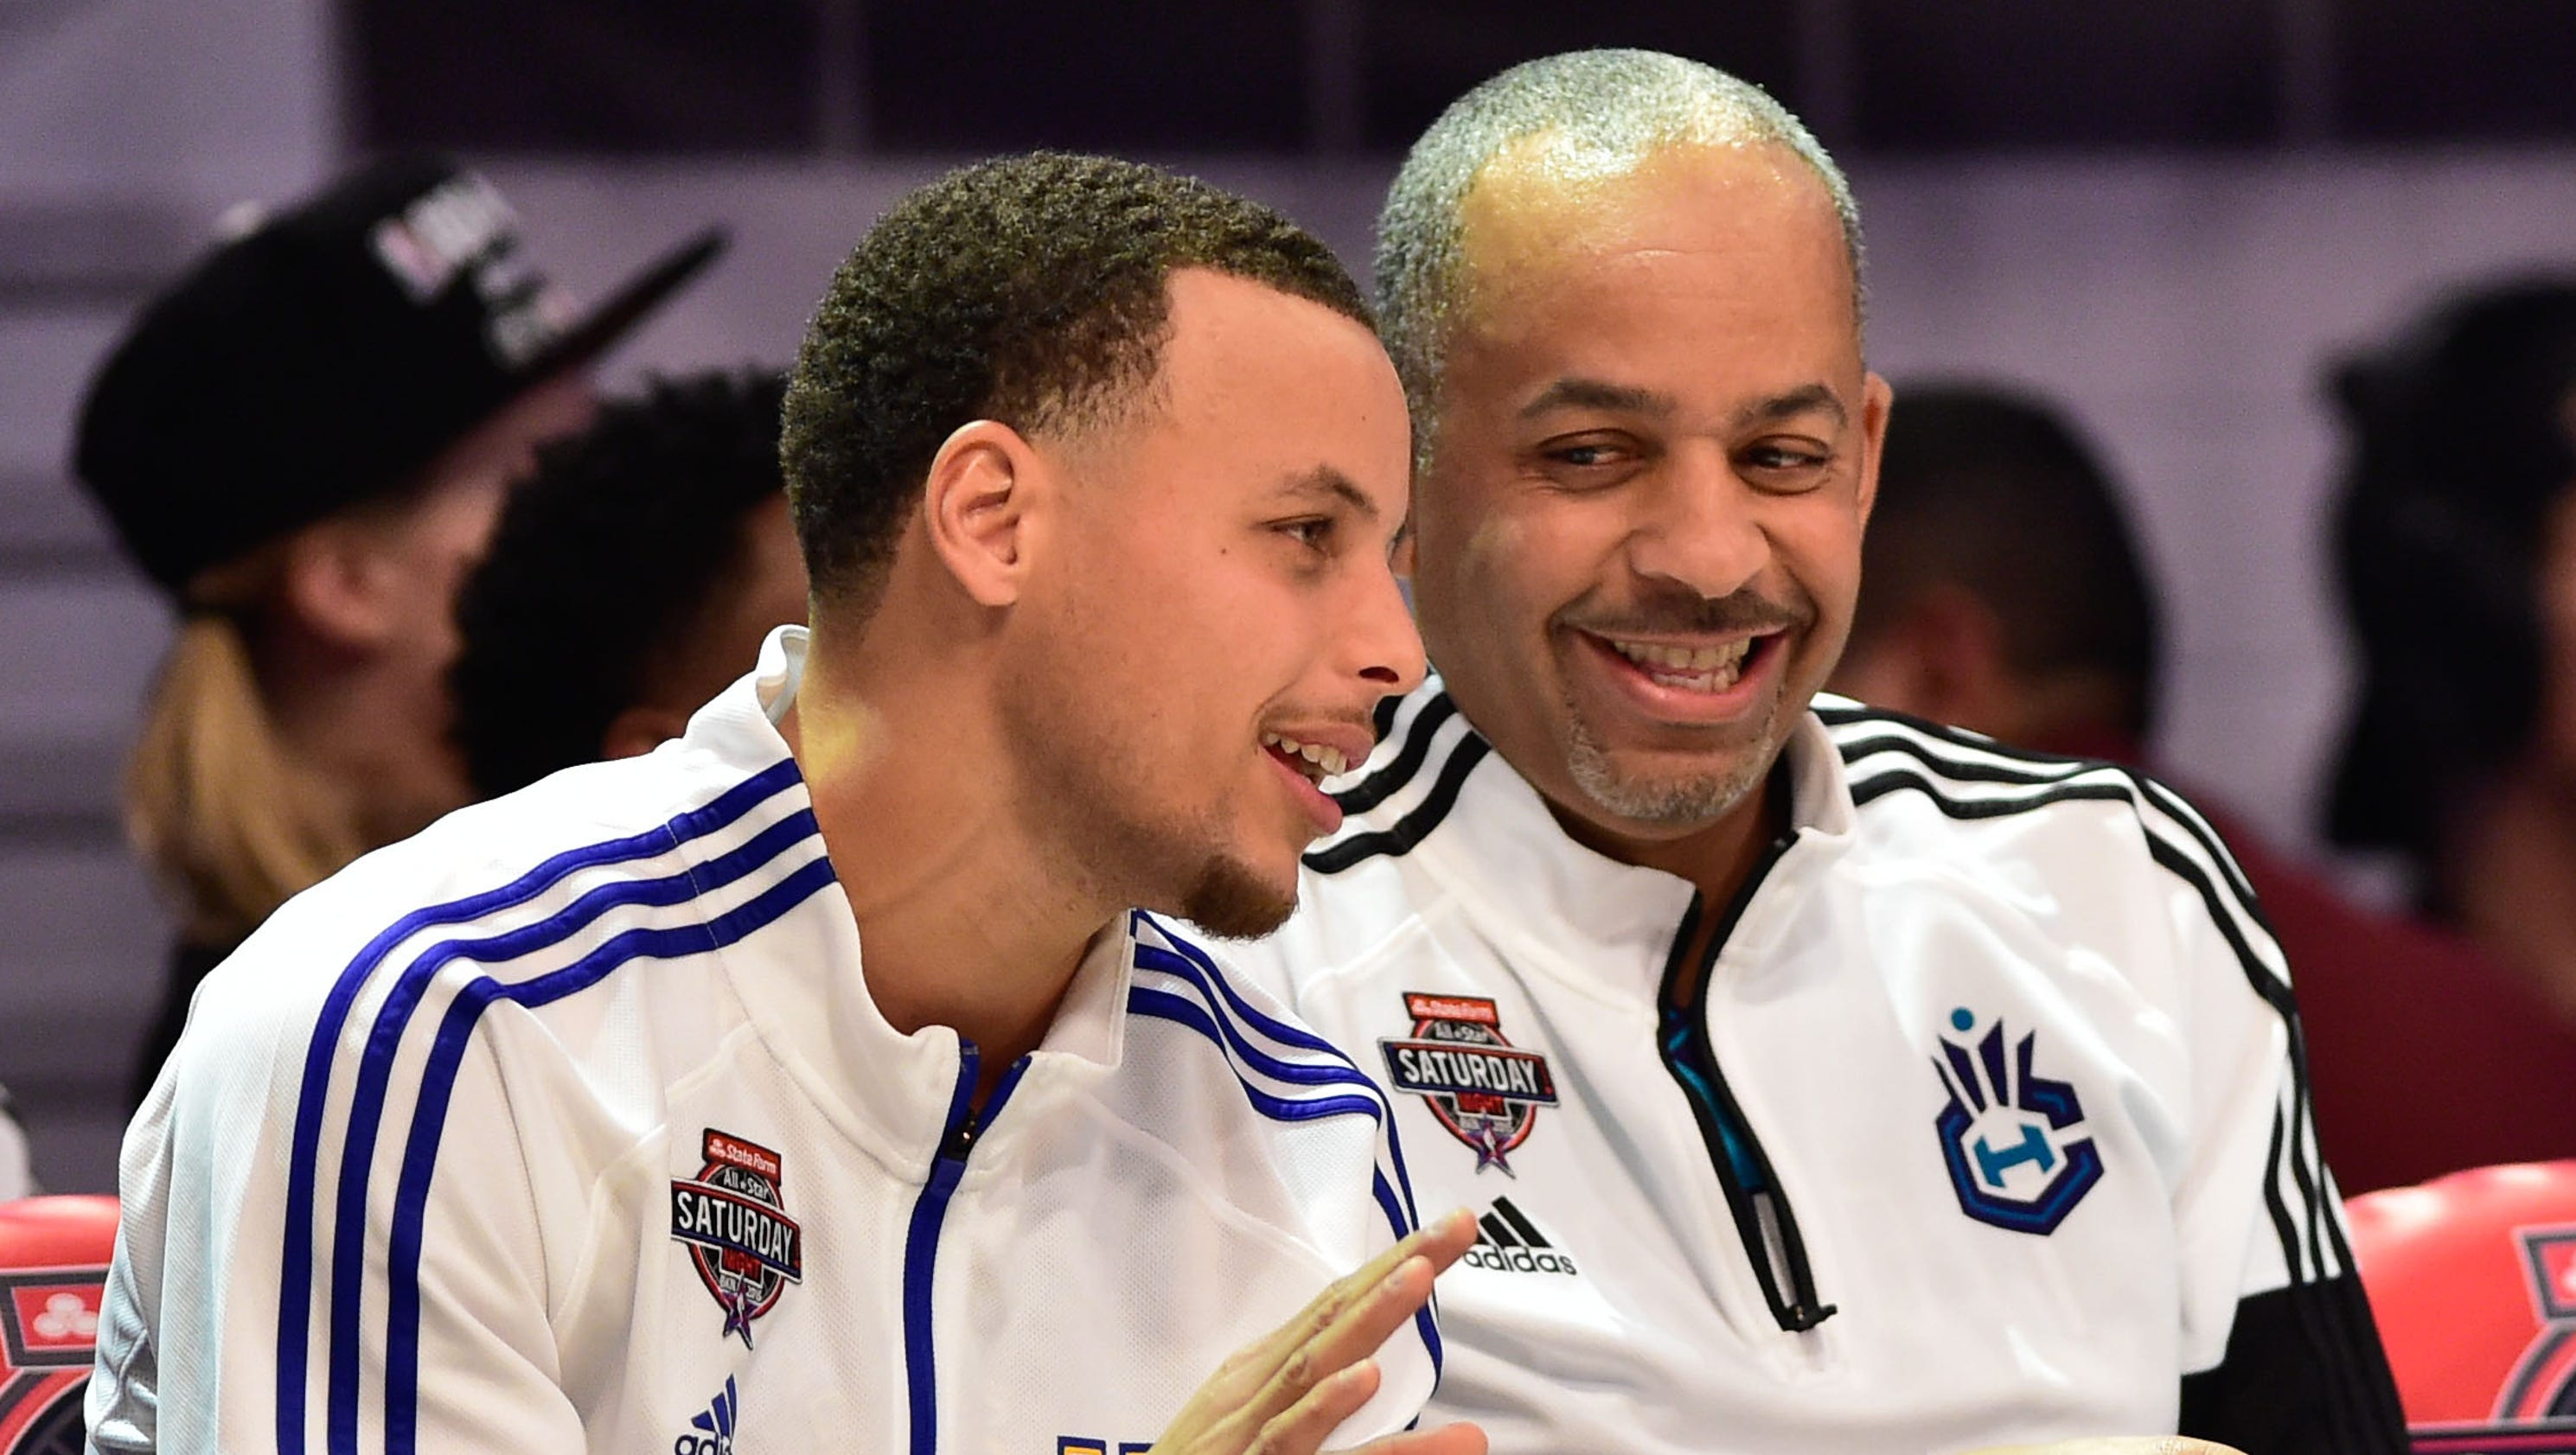 Stephen Curry wants to play in the NBA as long as his father Dell